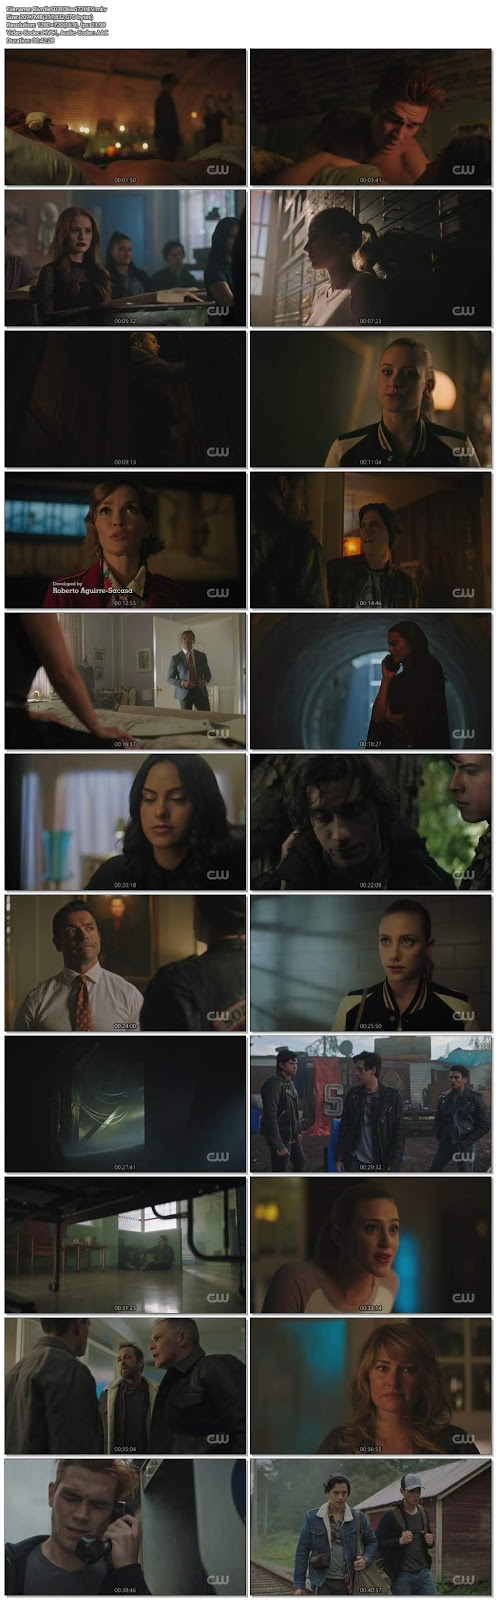 Riverdale S03 Episode 06 720p HDTV 200MB Download , hollwood tv series Riverdale S03  Download Episode 06 720p hdtv TV SHOW hevc x265 hdrip 200mb 250mb free download or watch online at world4ufree.fun